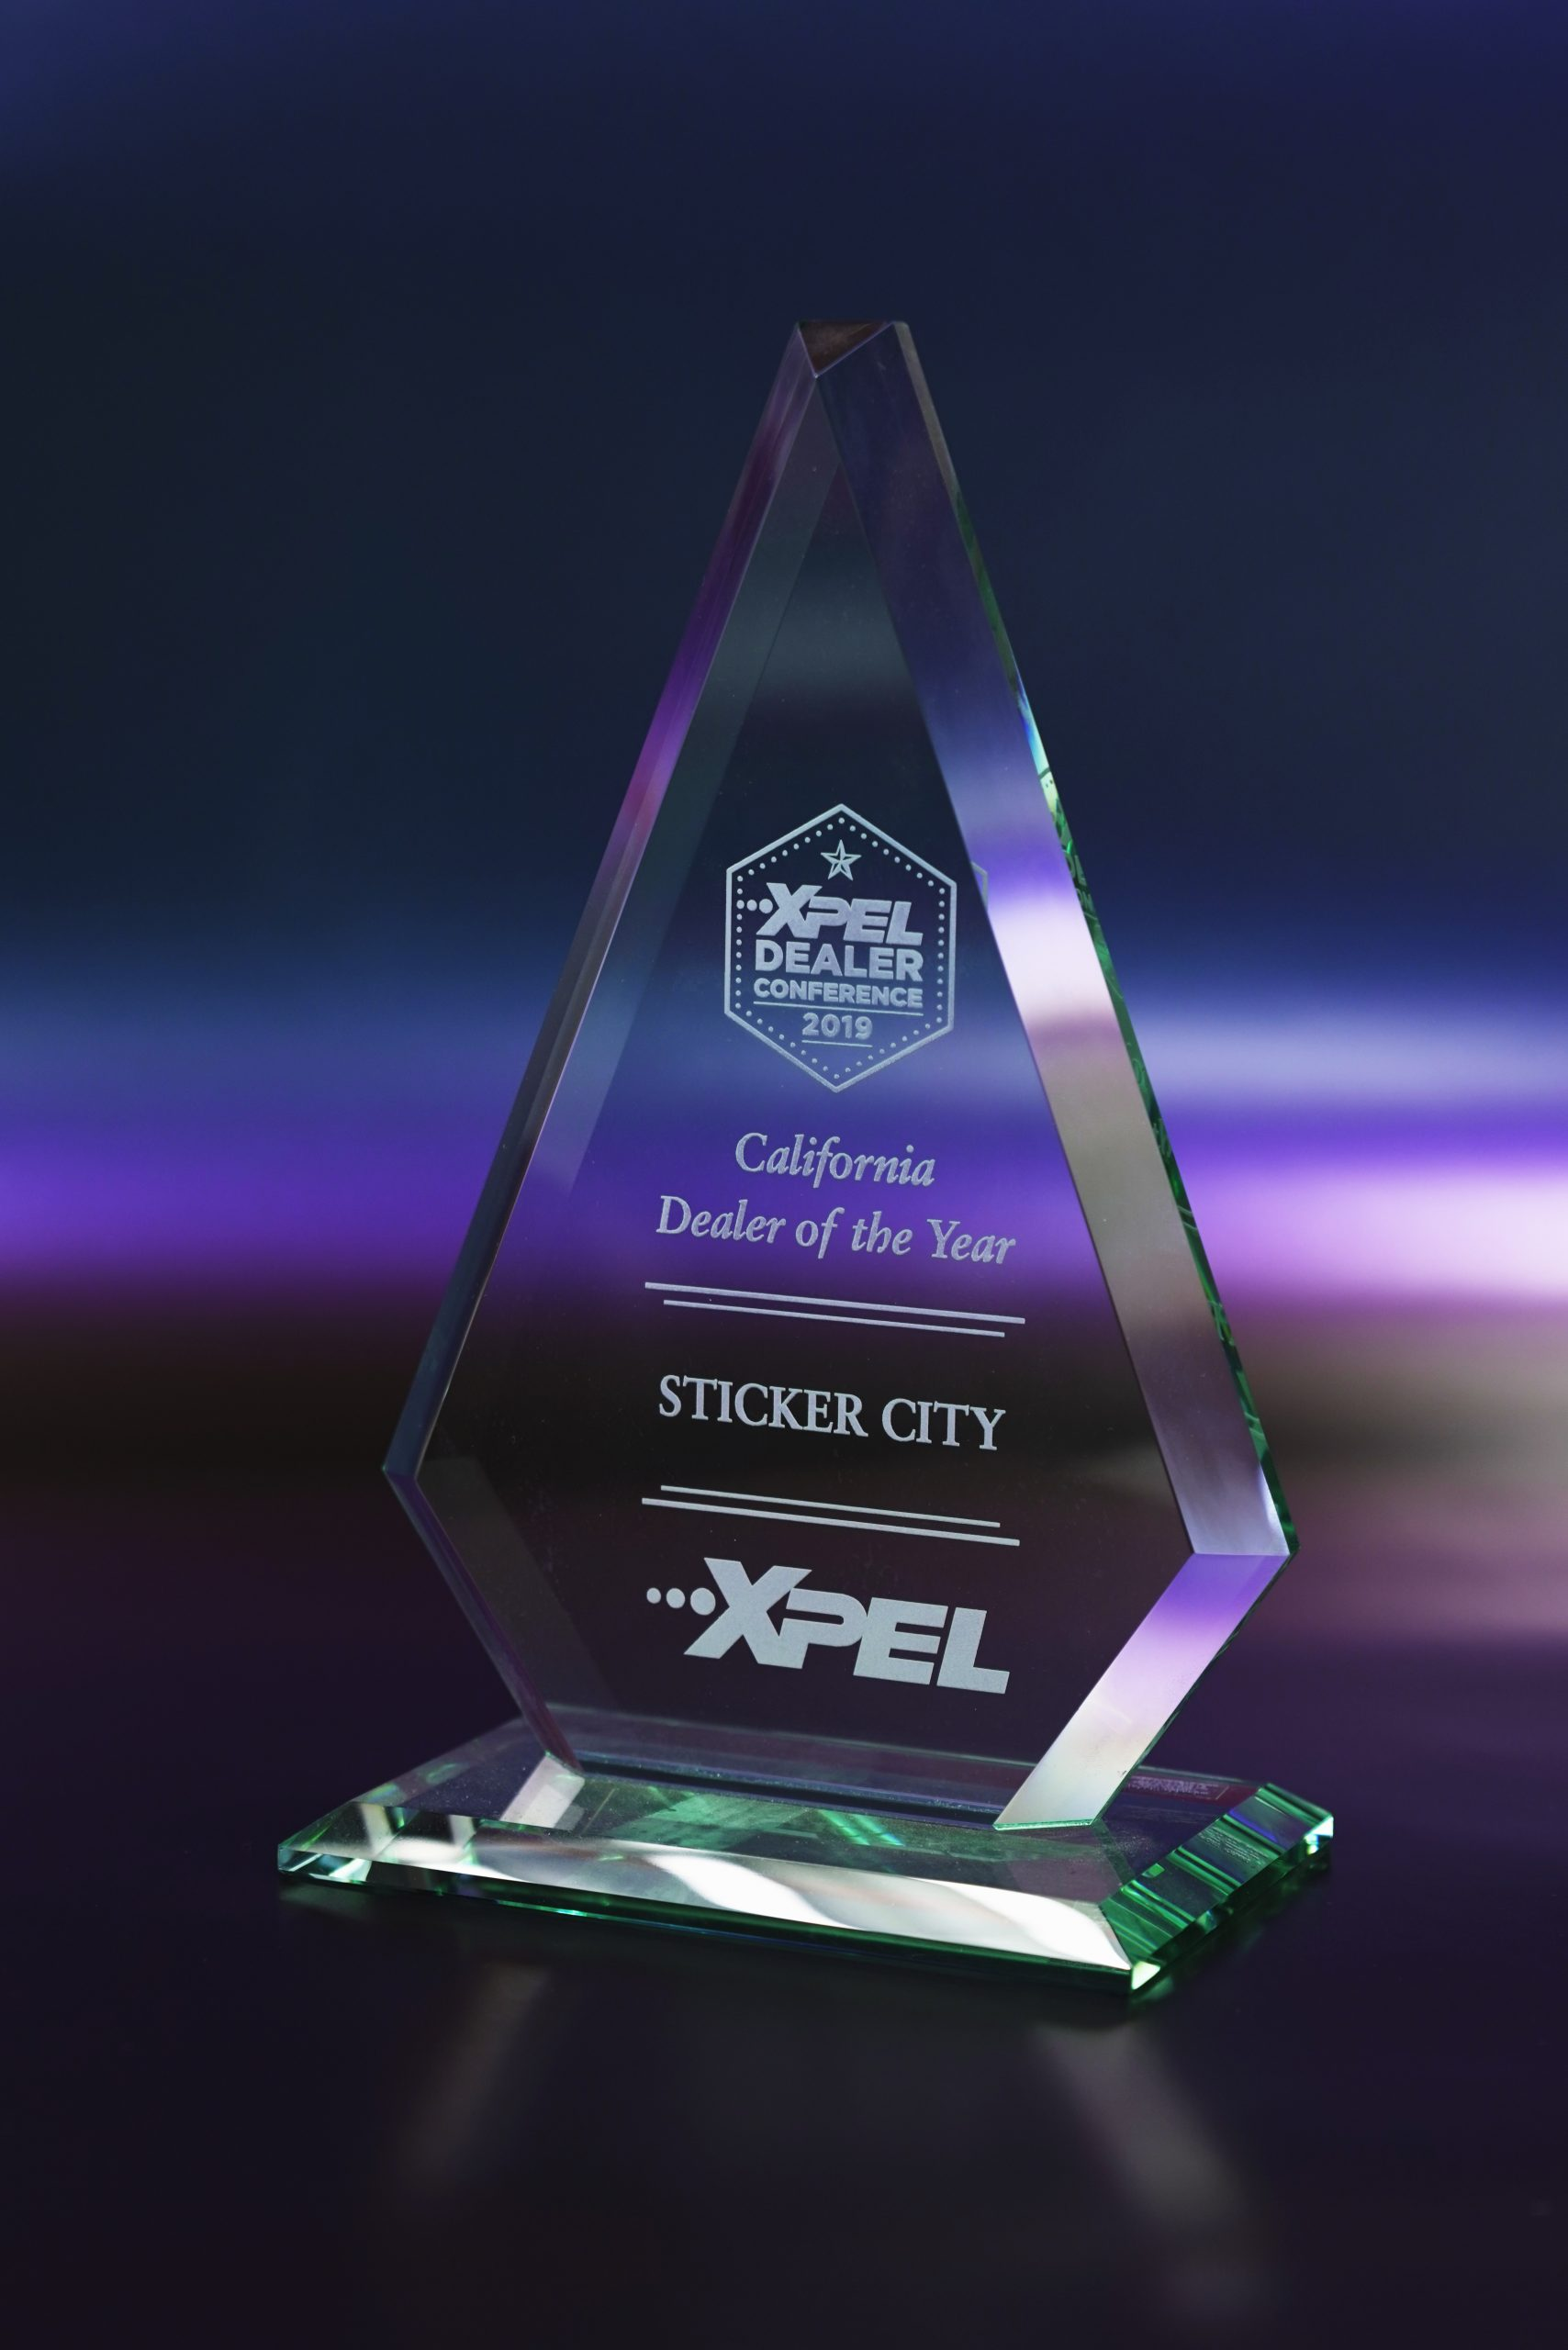 XPEL 2018 California Dealer of the Year: Sticker City